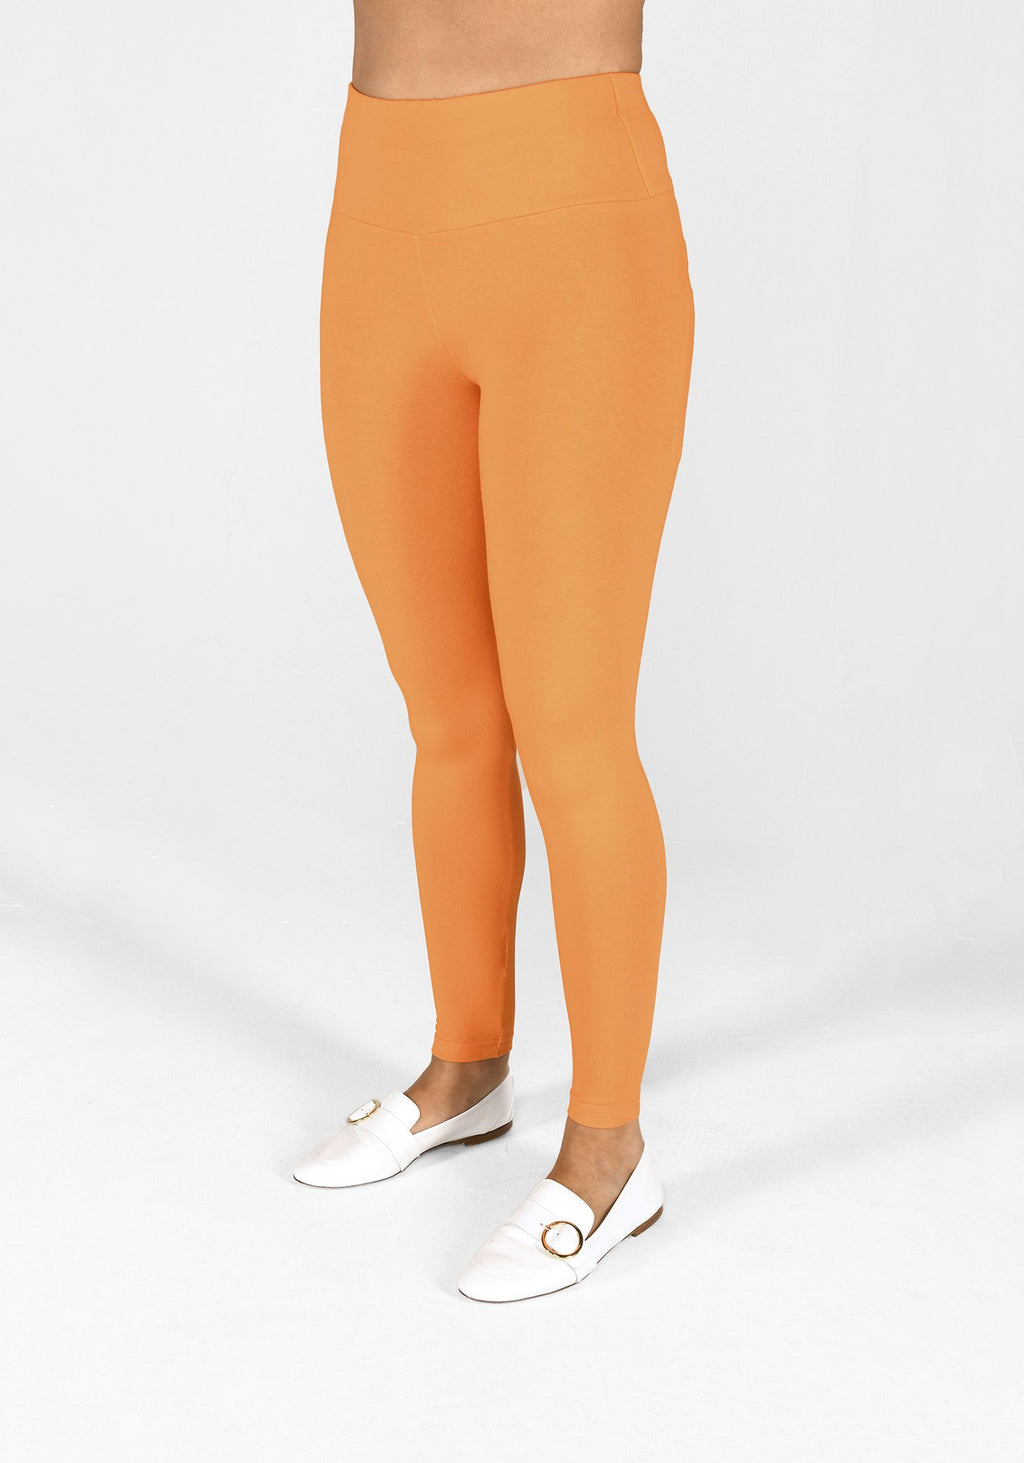 tiger orange high waisted leggings 1